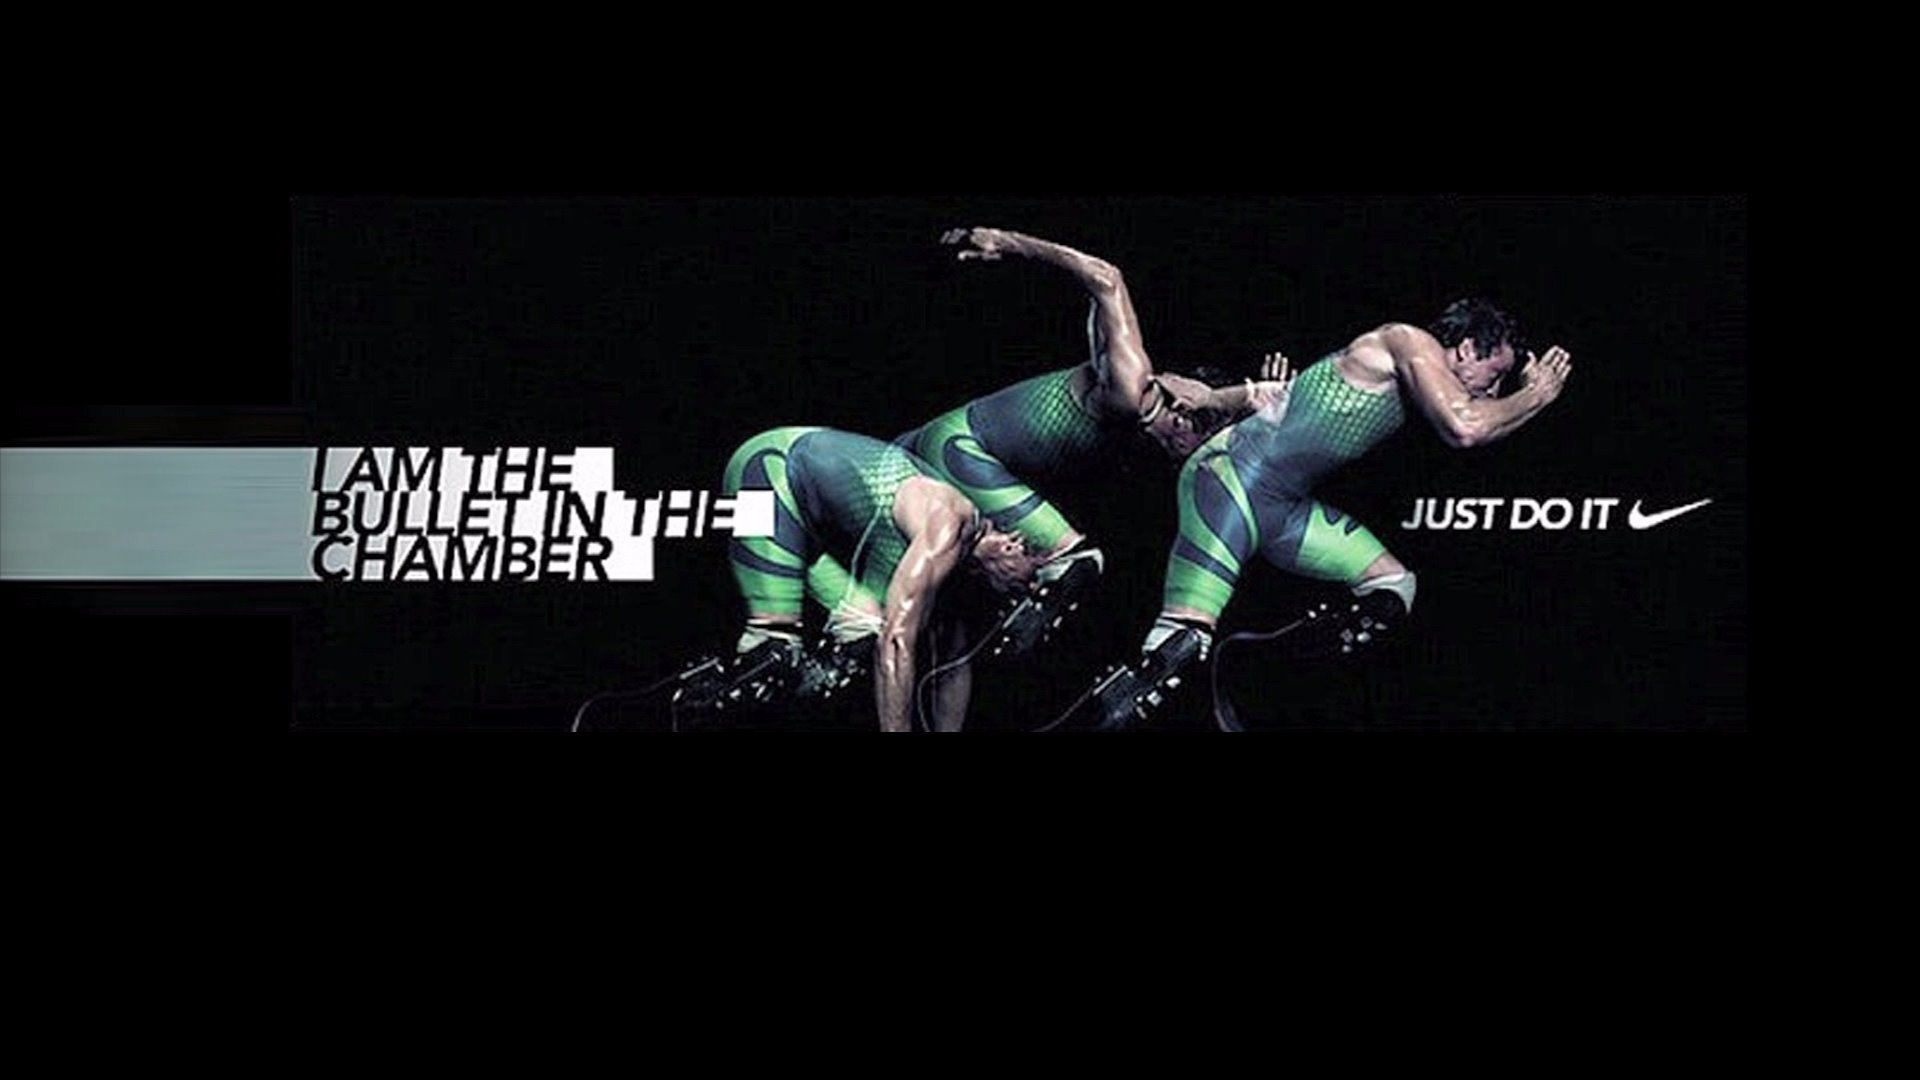 Sport Wallpaper Just Do It: Nike Reacts To Accused Murderer Oscar Pistorius' 'I Am The